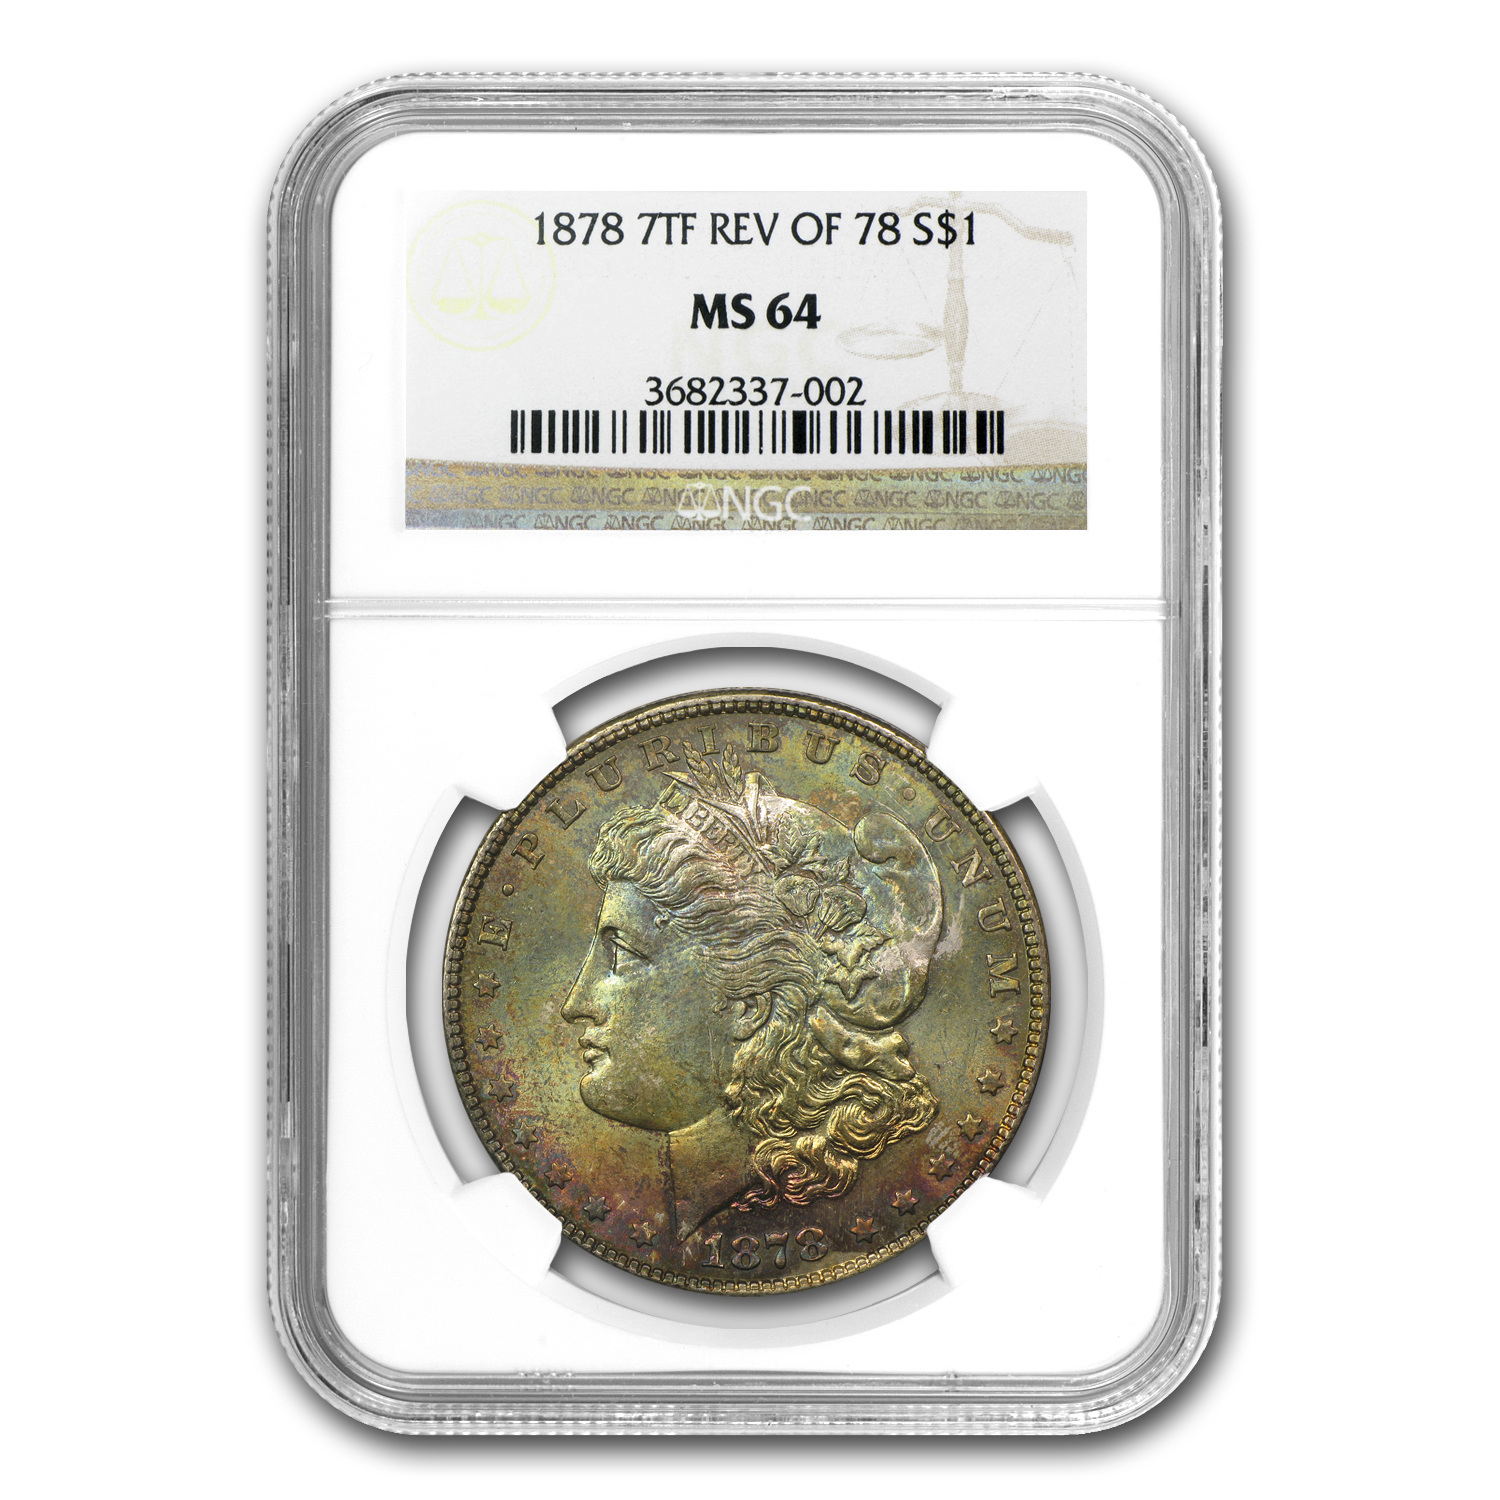 1878 Morgan Dollar 7 TF Rev of 78 MS-64 NGC Toned)